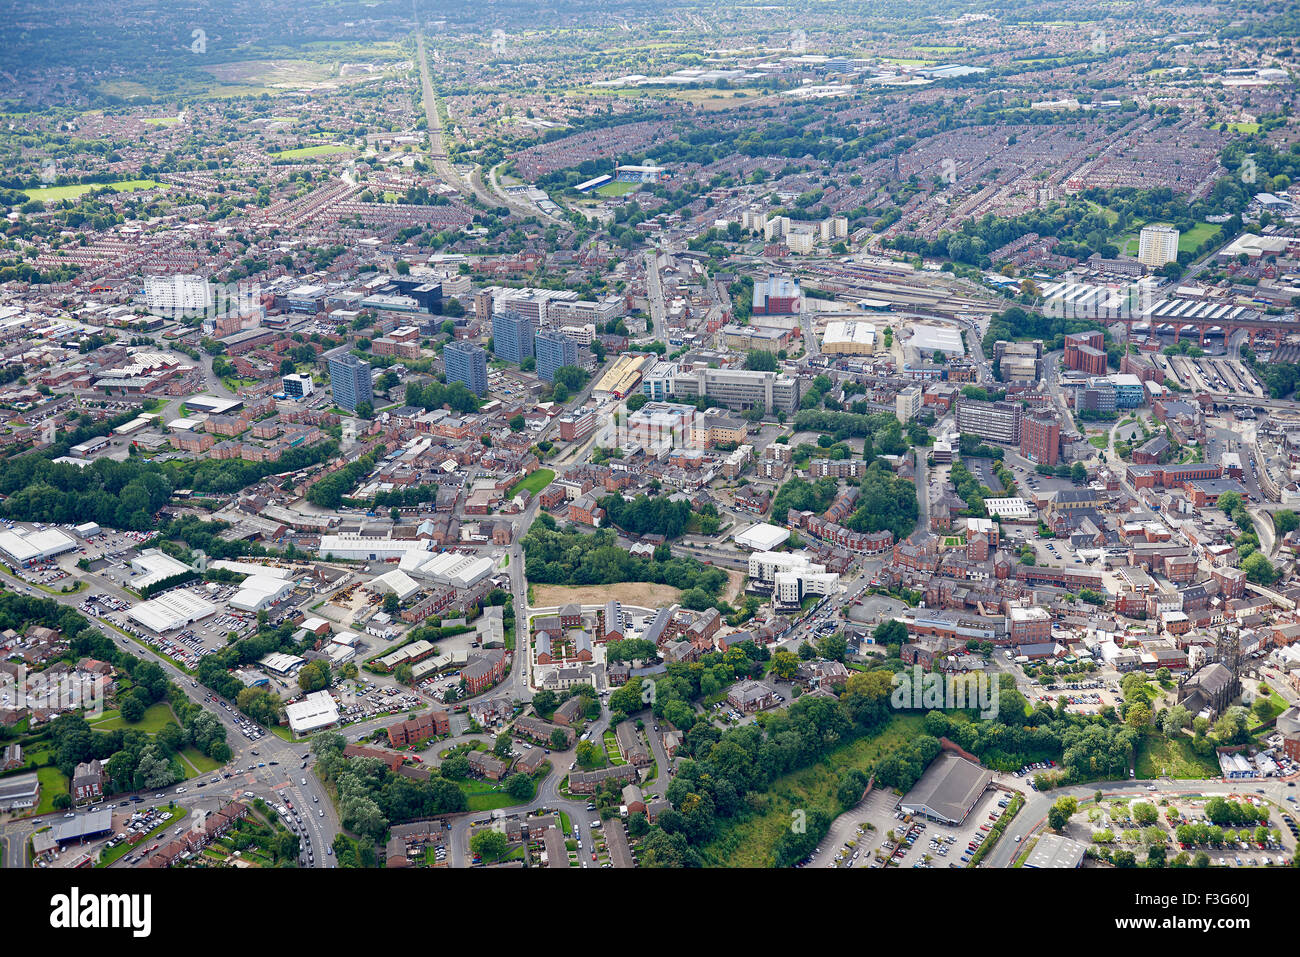 Stockport Town Centre, North West England, UK - Stock Image